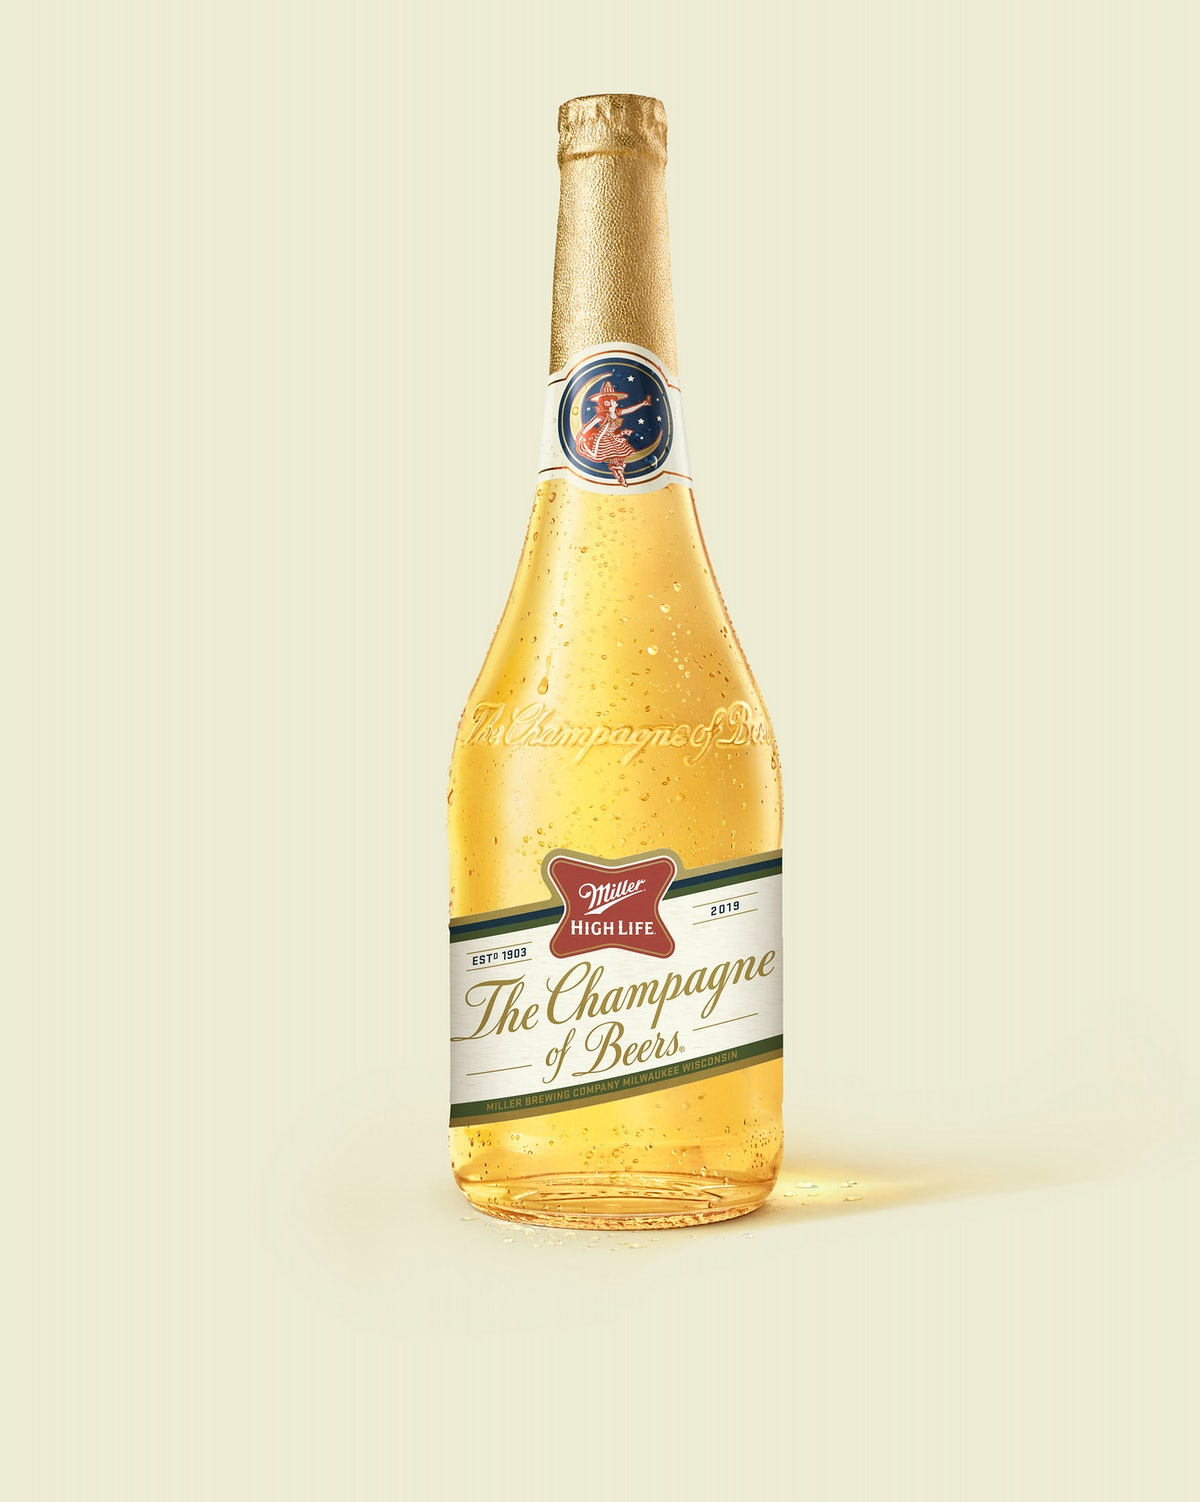 Miller High Life's Champagne Bottles For 2019 will appear in a vending machine across NYC this Decem...